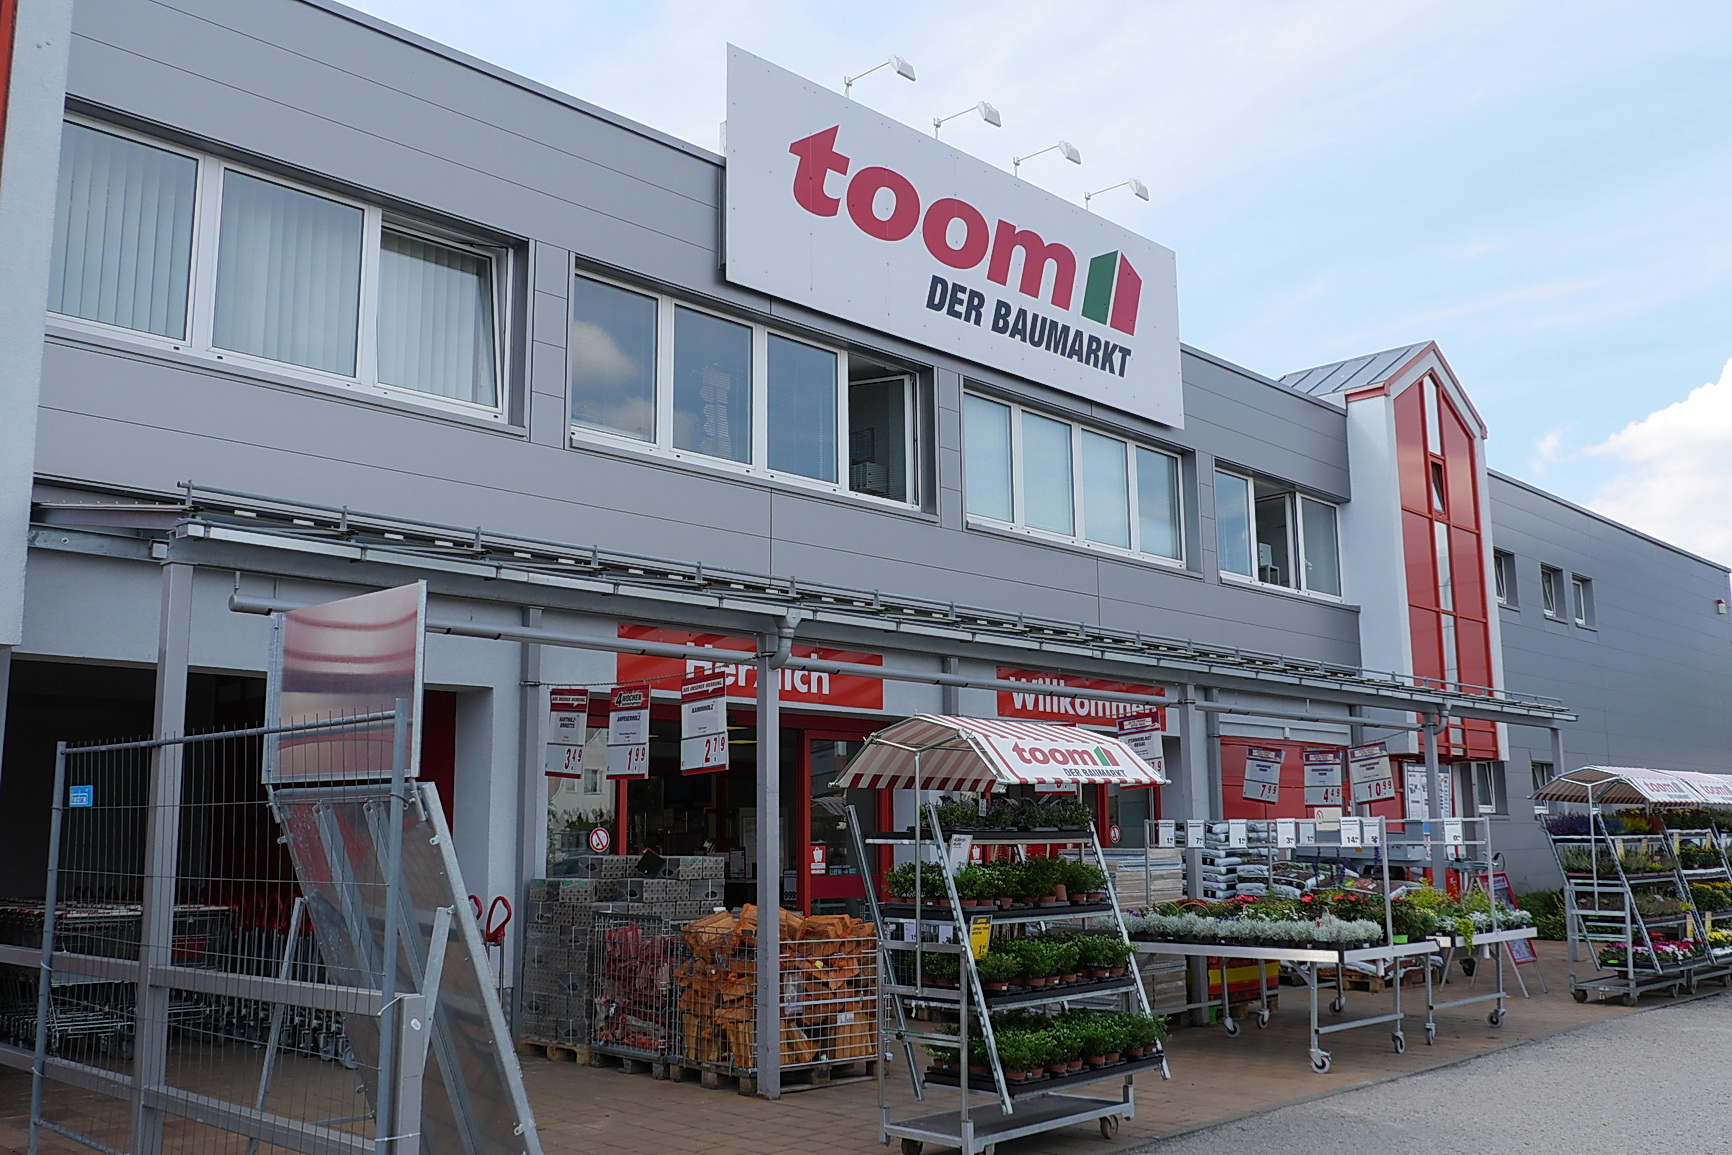 Toom Good Toom Baumarkt Gmbh With Toom Latest Entrada De Pessoas